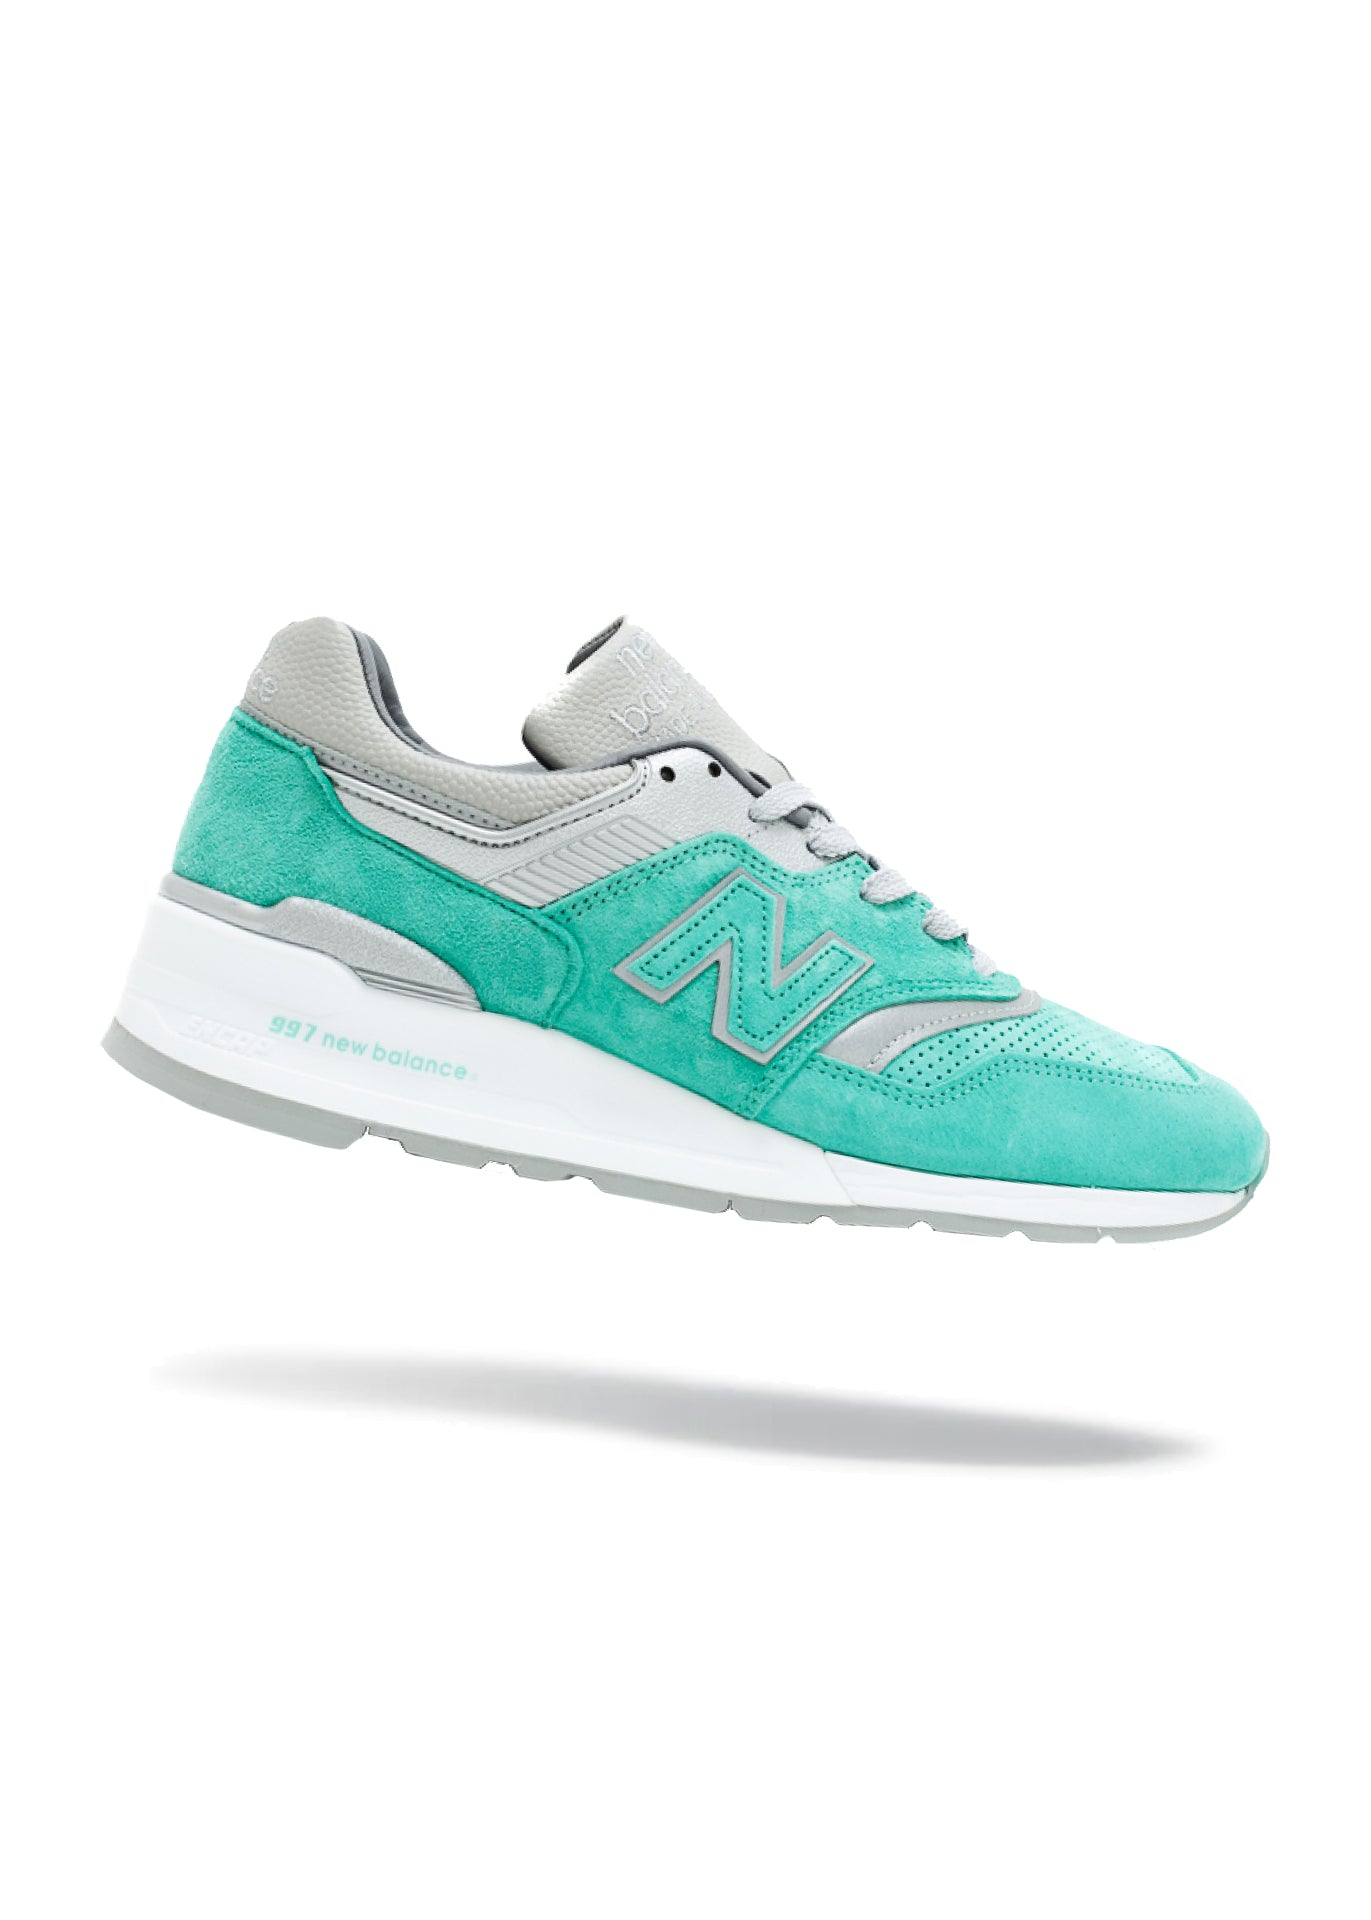 New Balance 997 CNCPTS Rivalry Pack New York